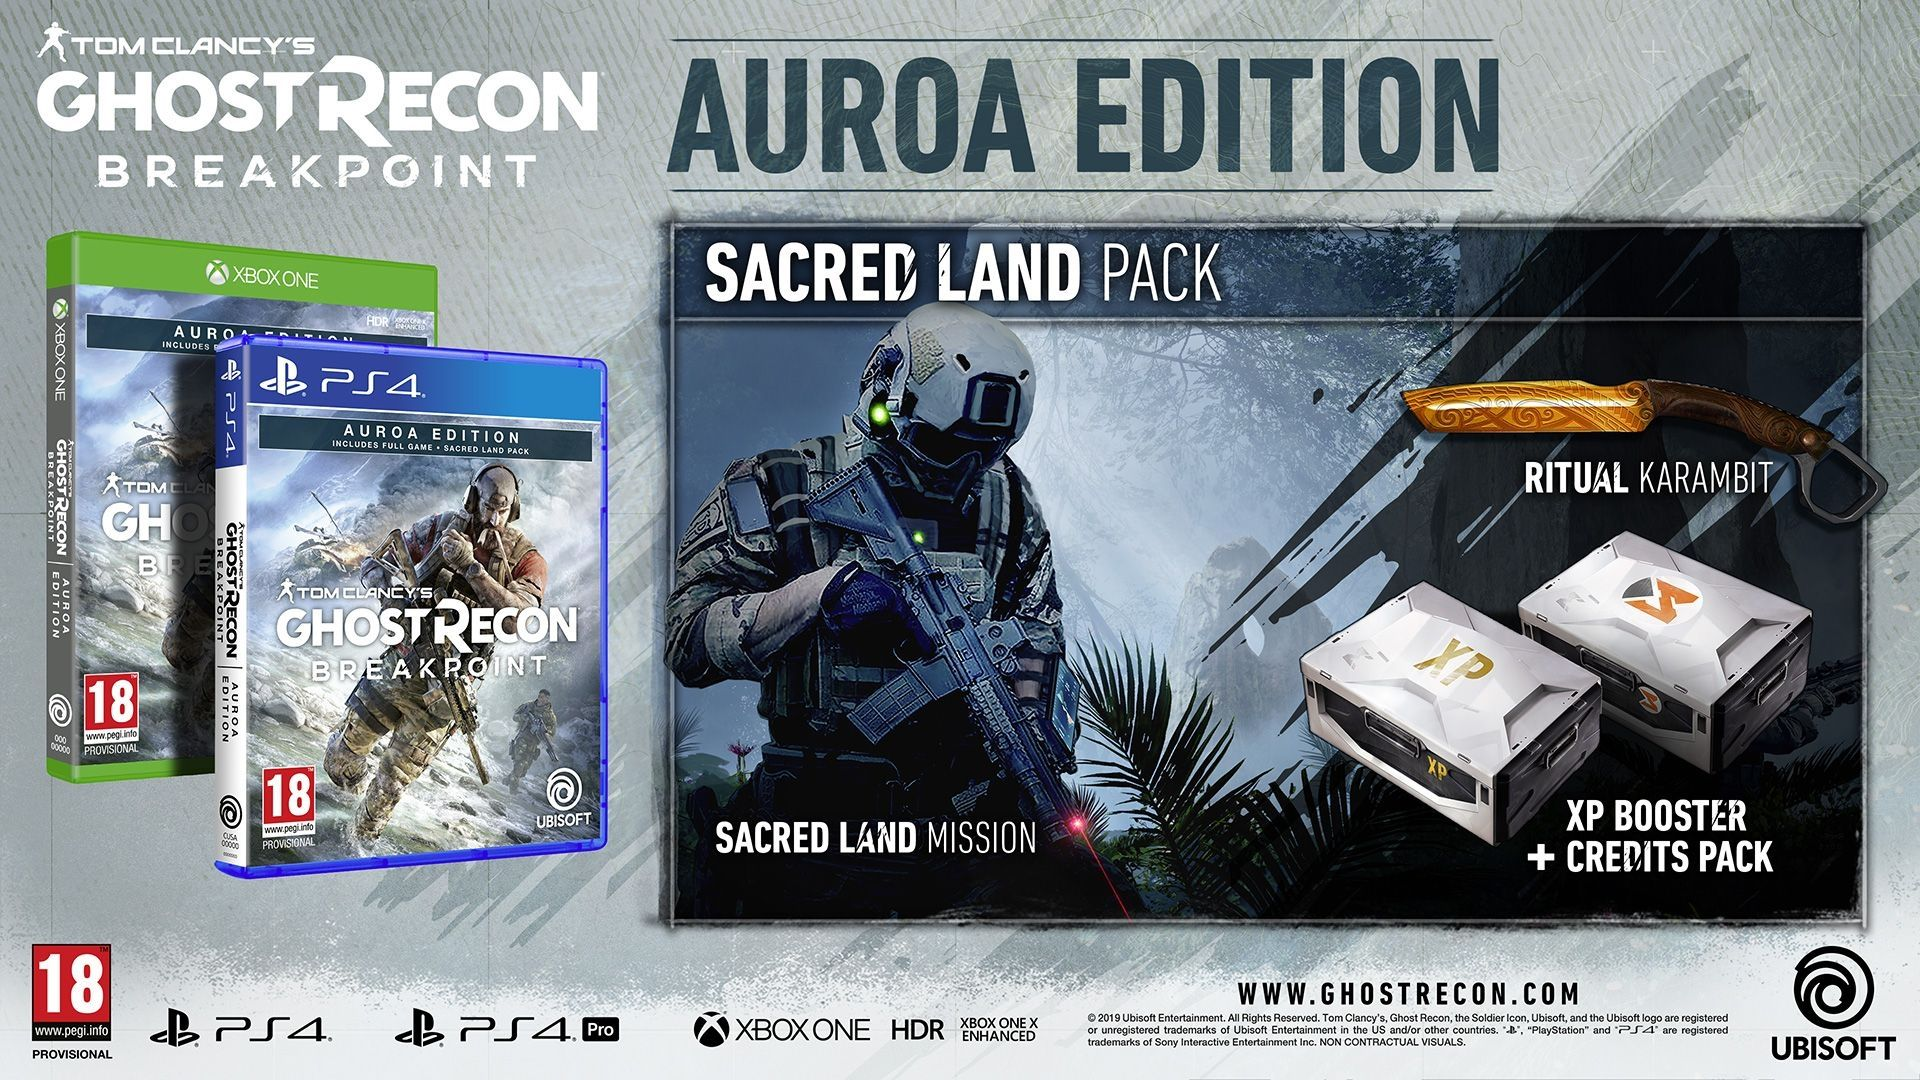 Tom Clancy's Ghost Recon Breakpoint - 4